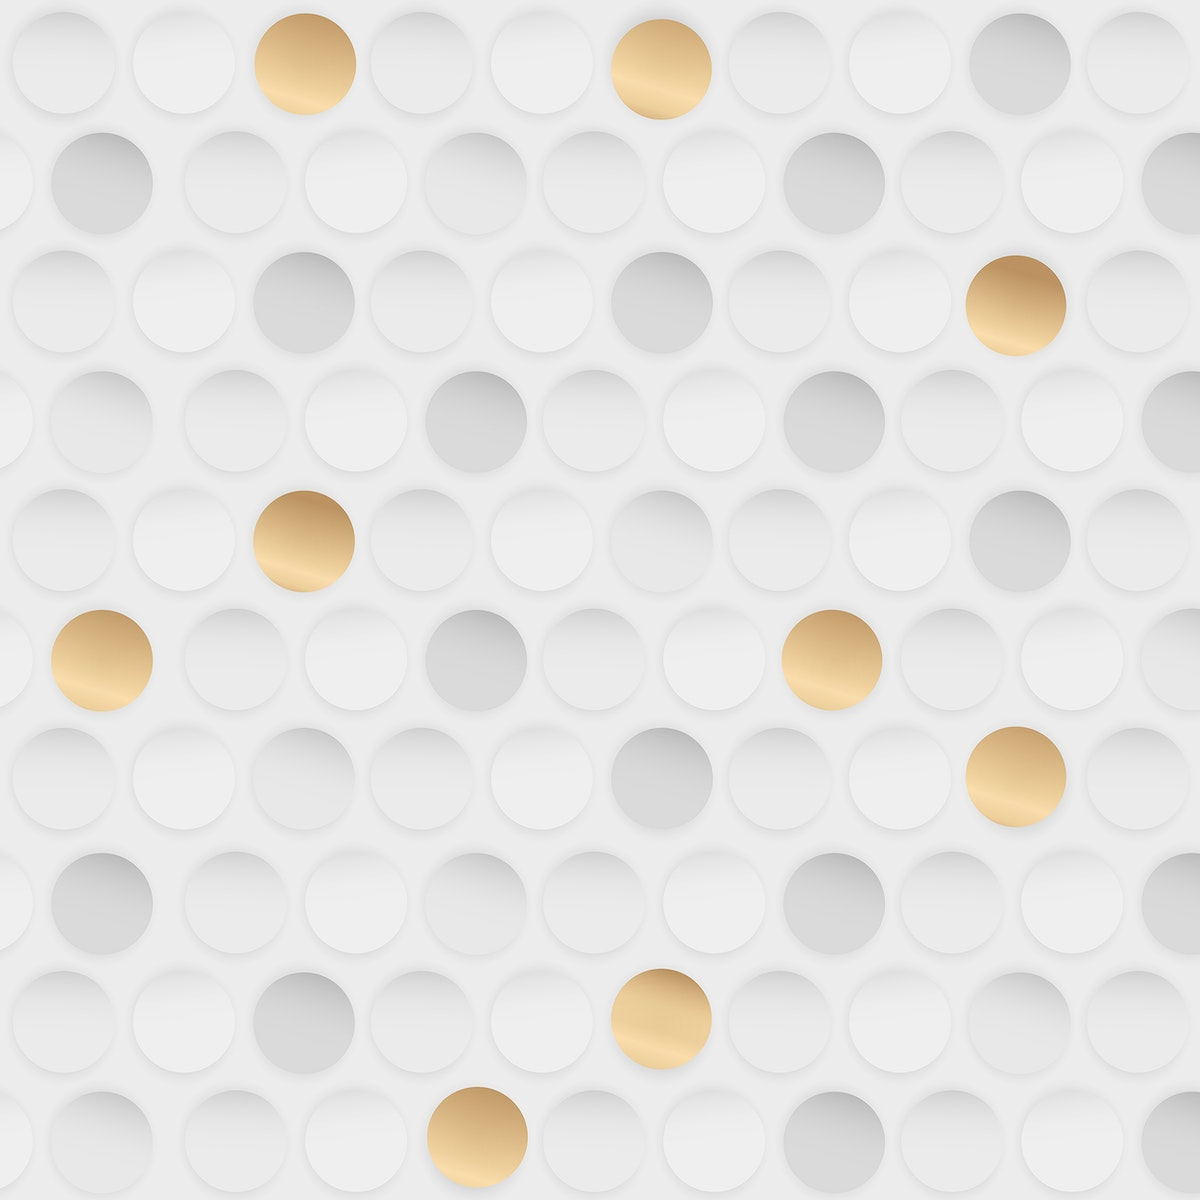 White and gold seamless round pattern vector